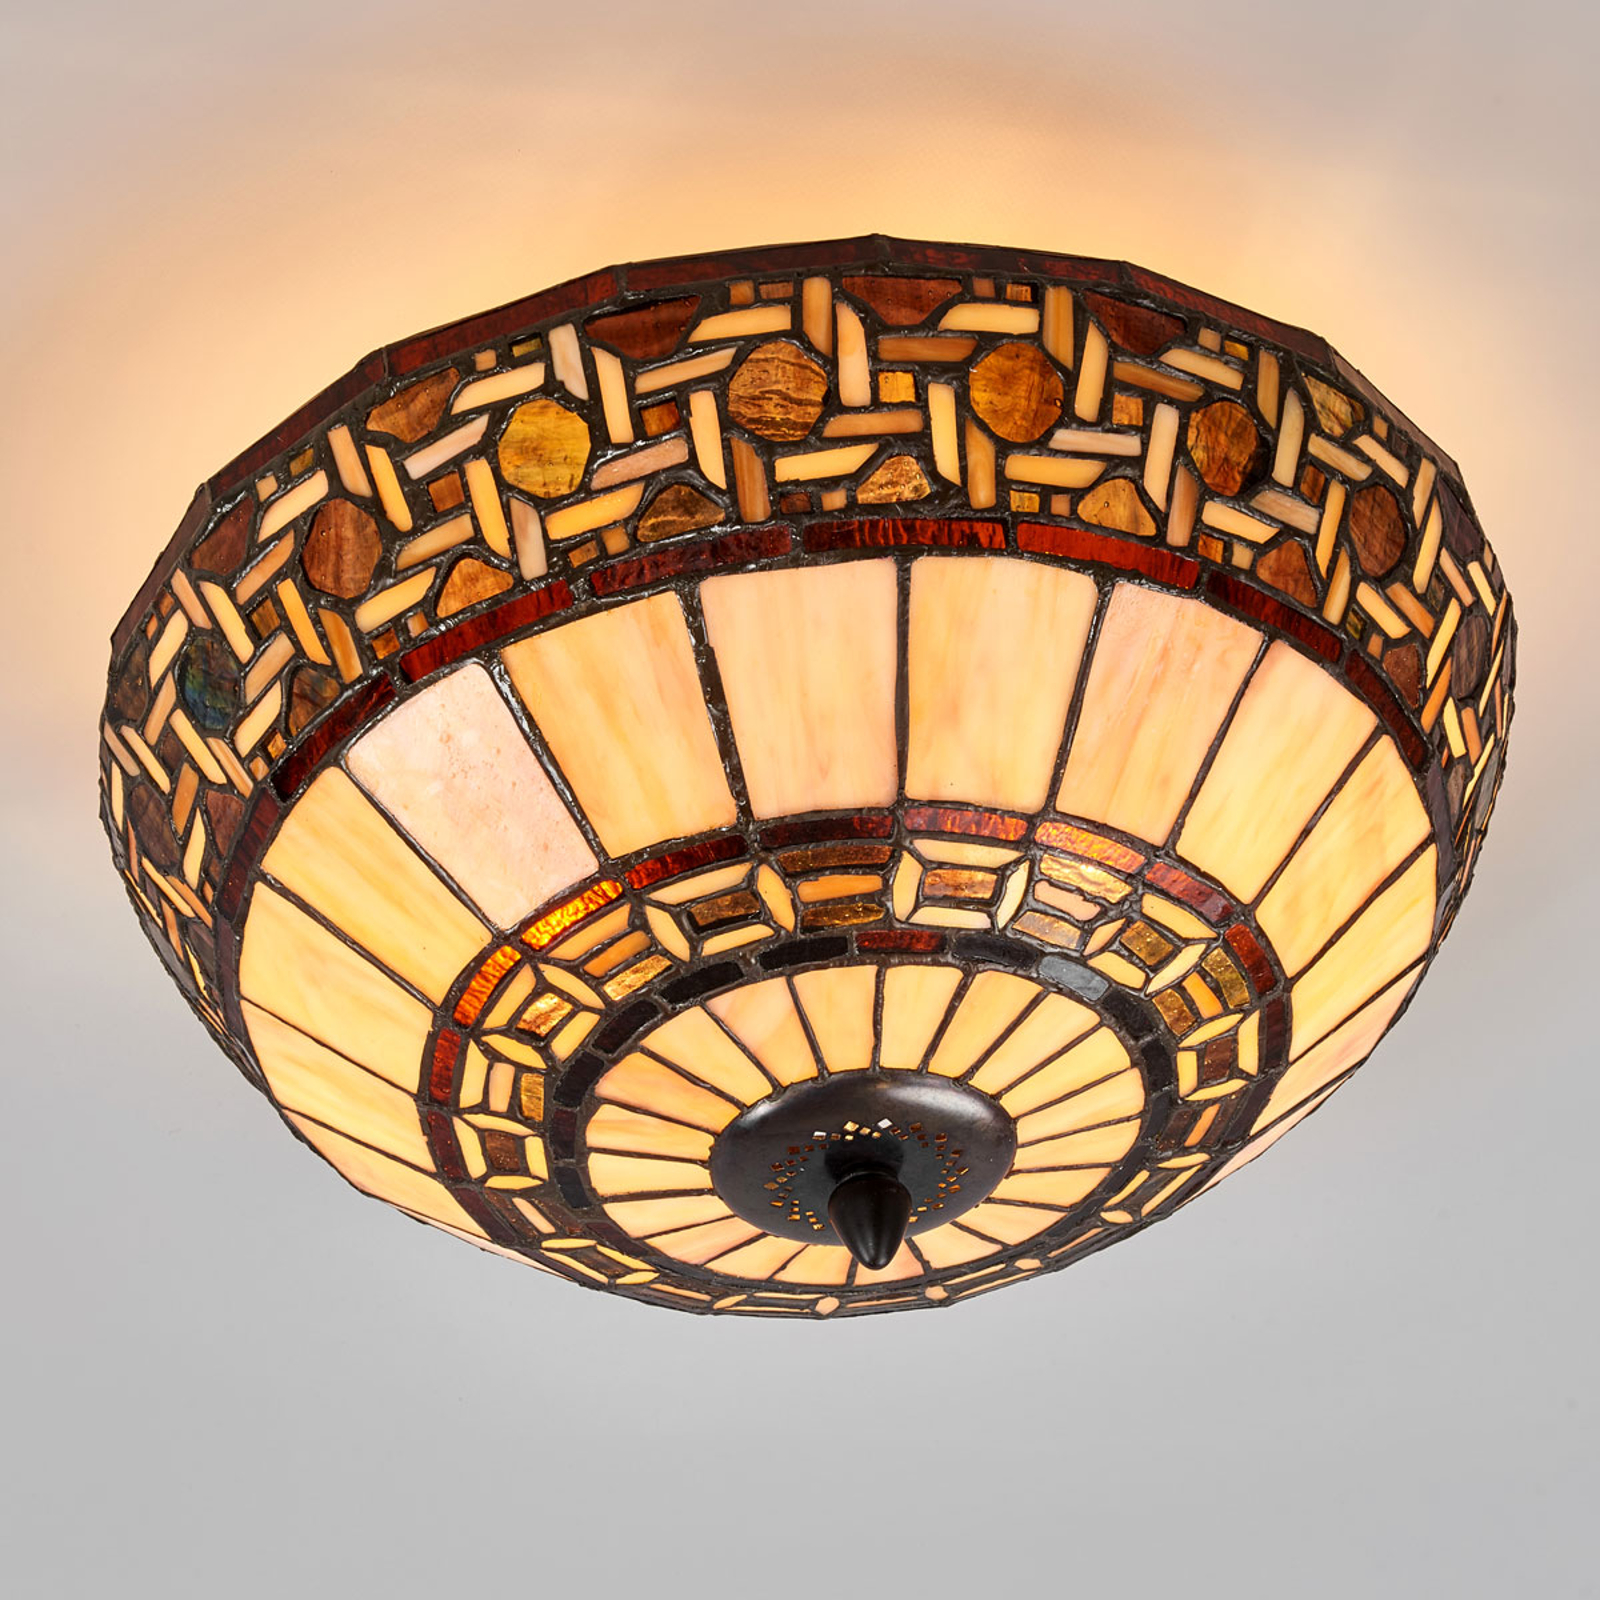 Ceiling lamp Wilma in the Tiffany style_6064223_1